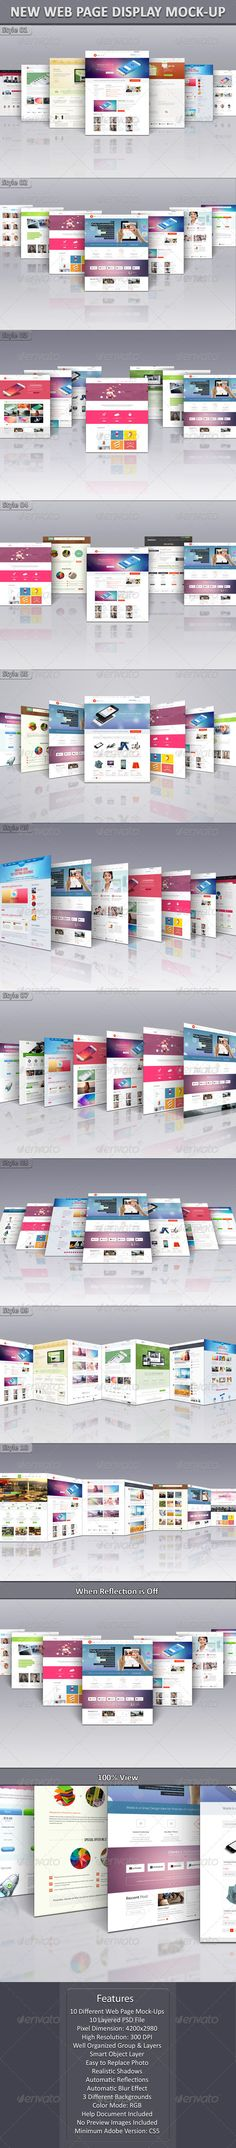 51 Best Graphics images in 2014 | 3d design, 3d background, Tags